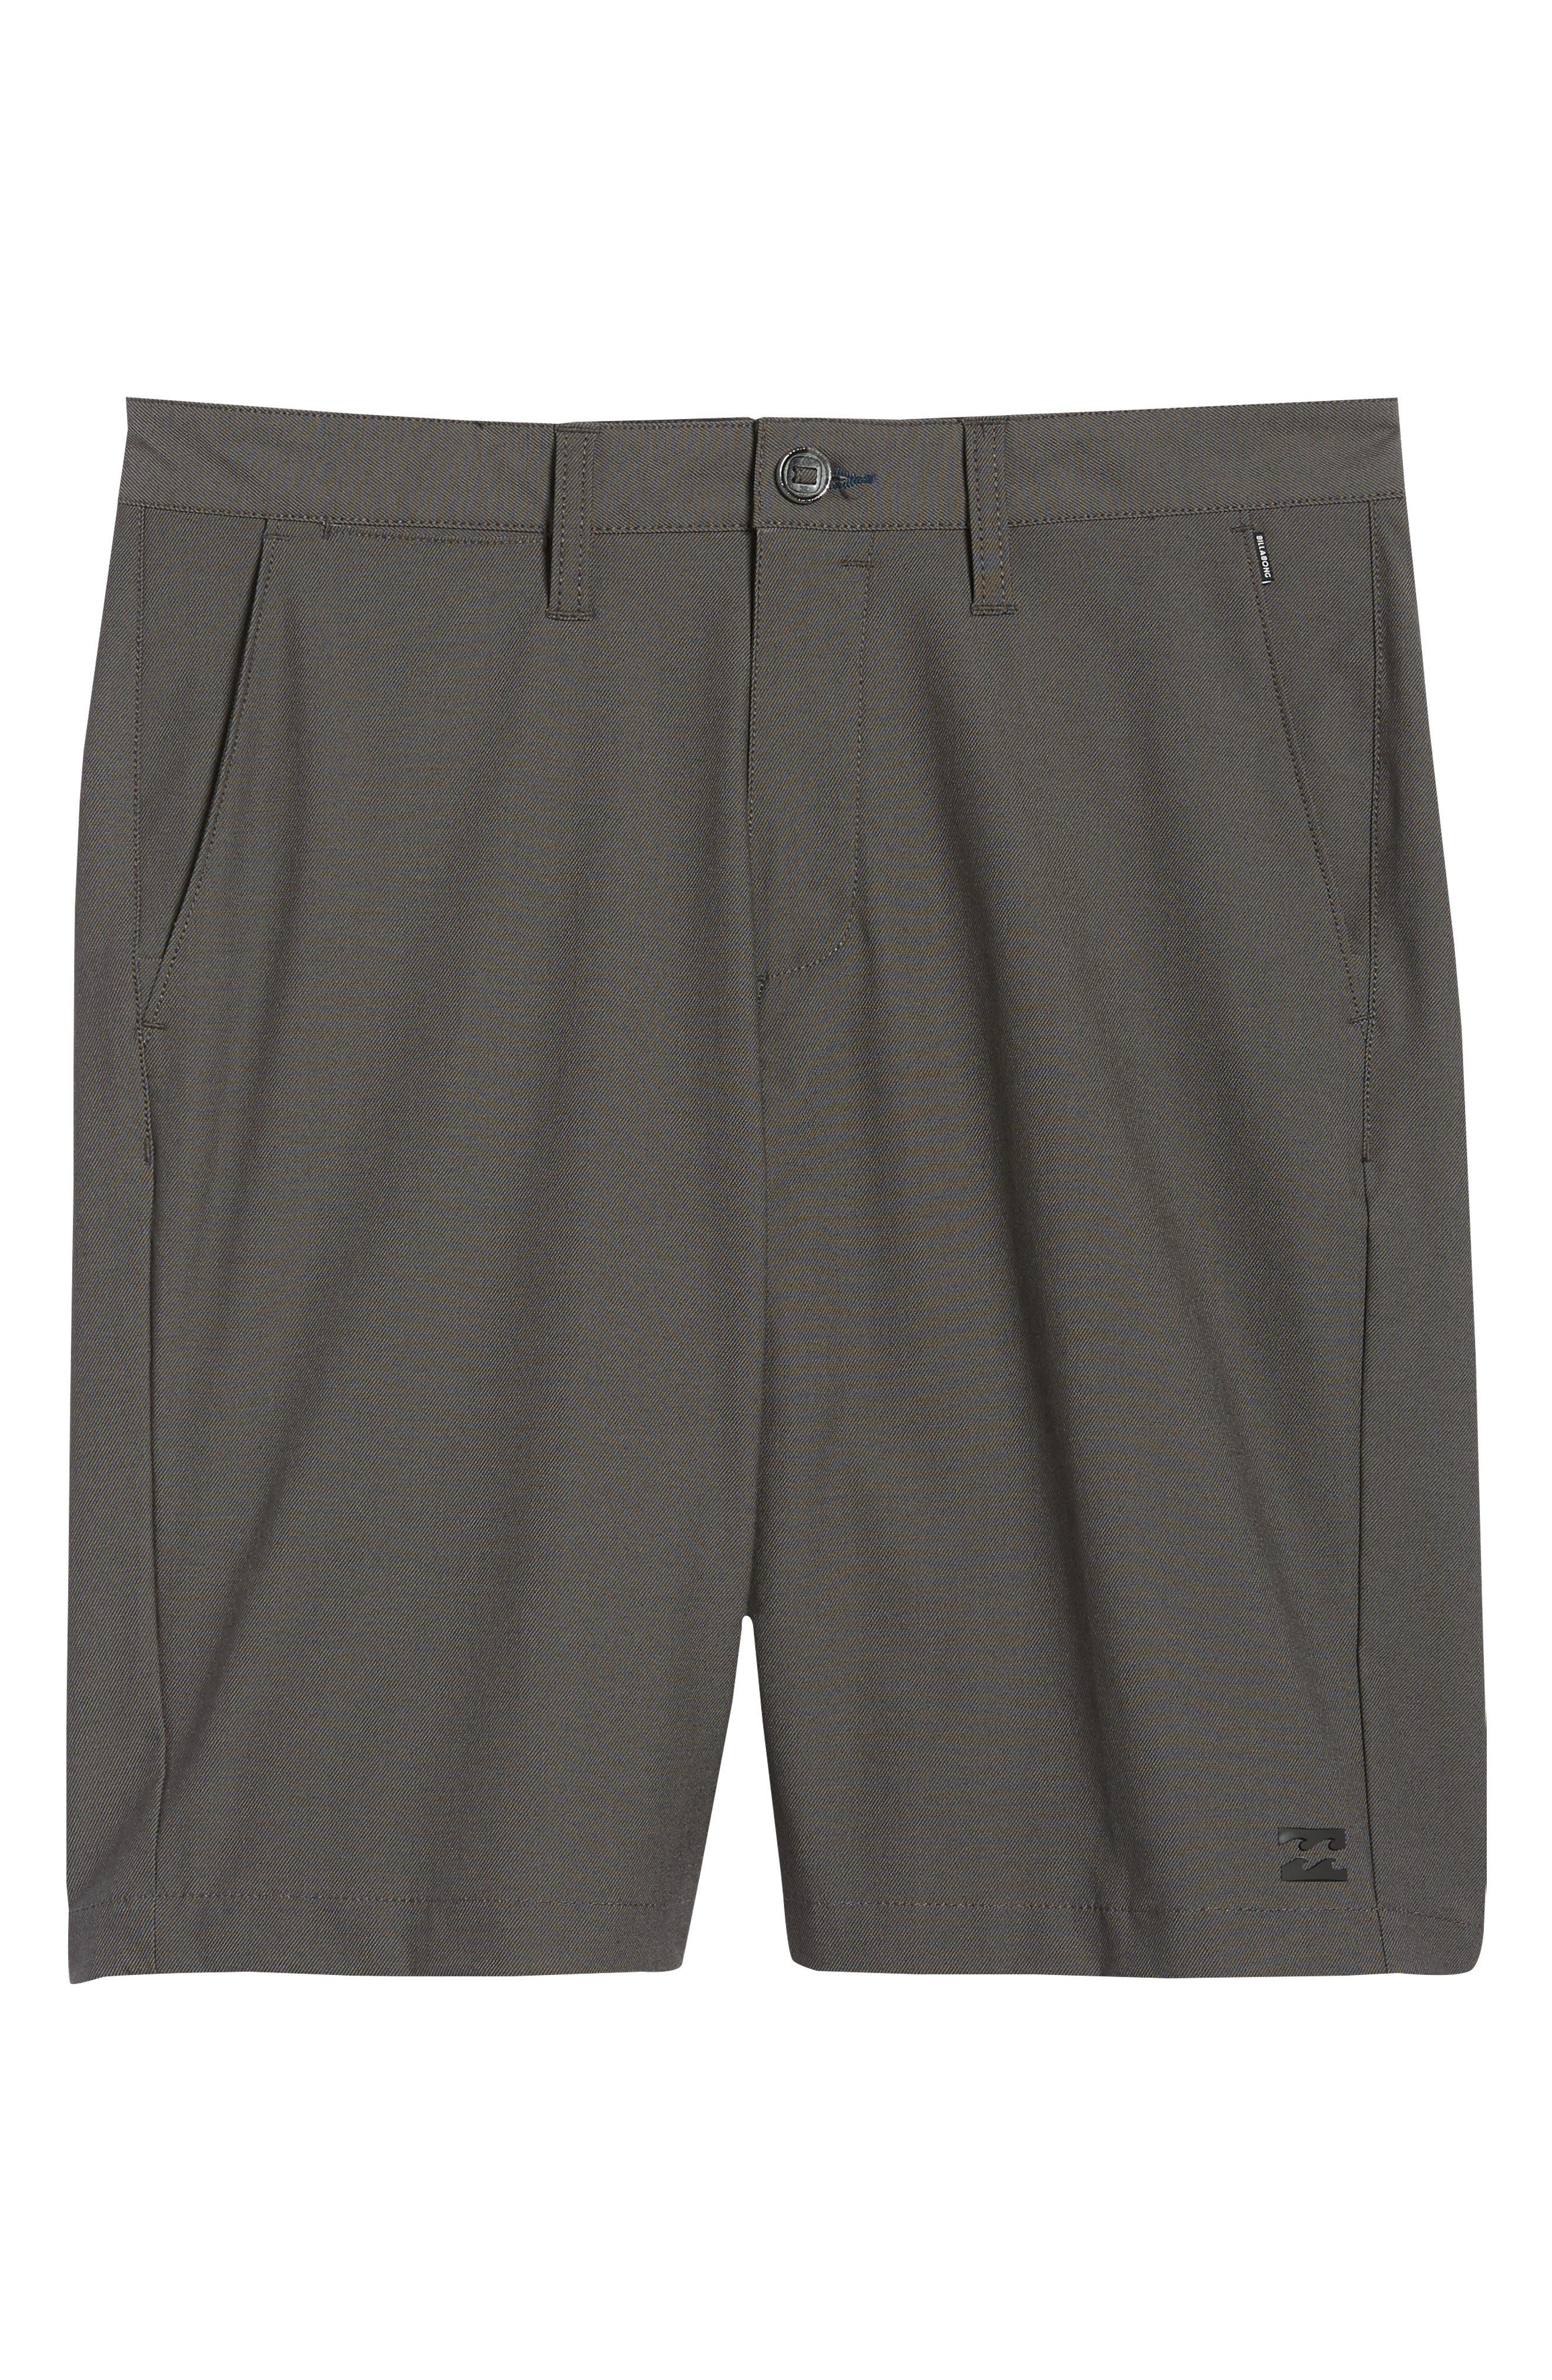 Crossfire X Submersible Twill Shorts,                             Alternate thumbnail 6, color,                             001